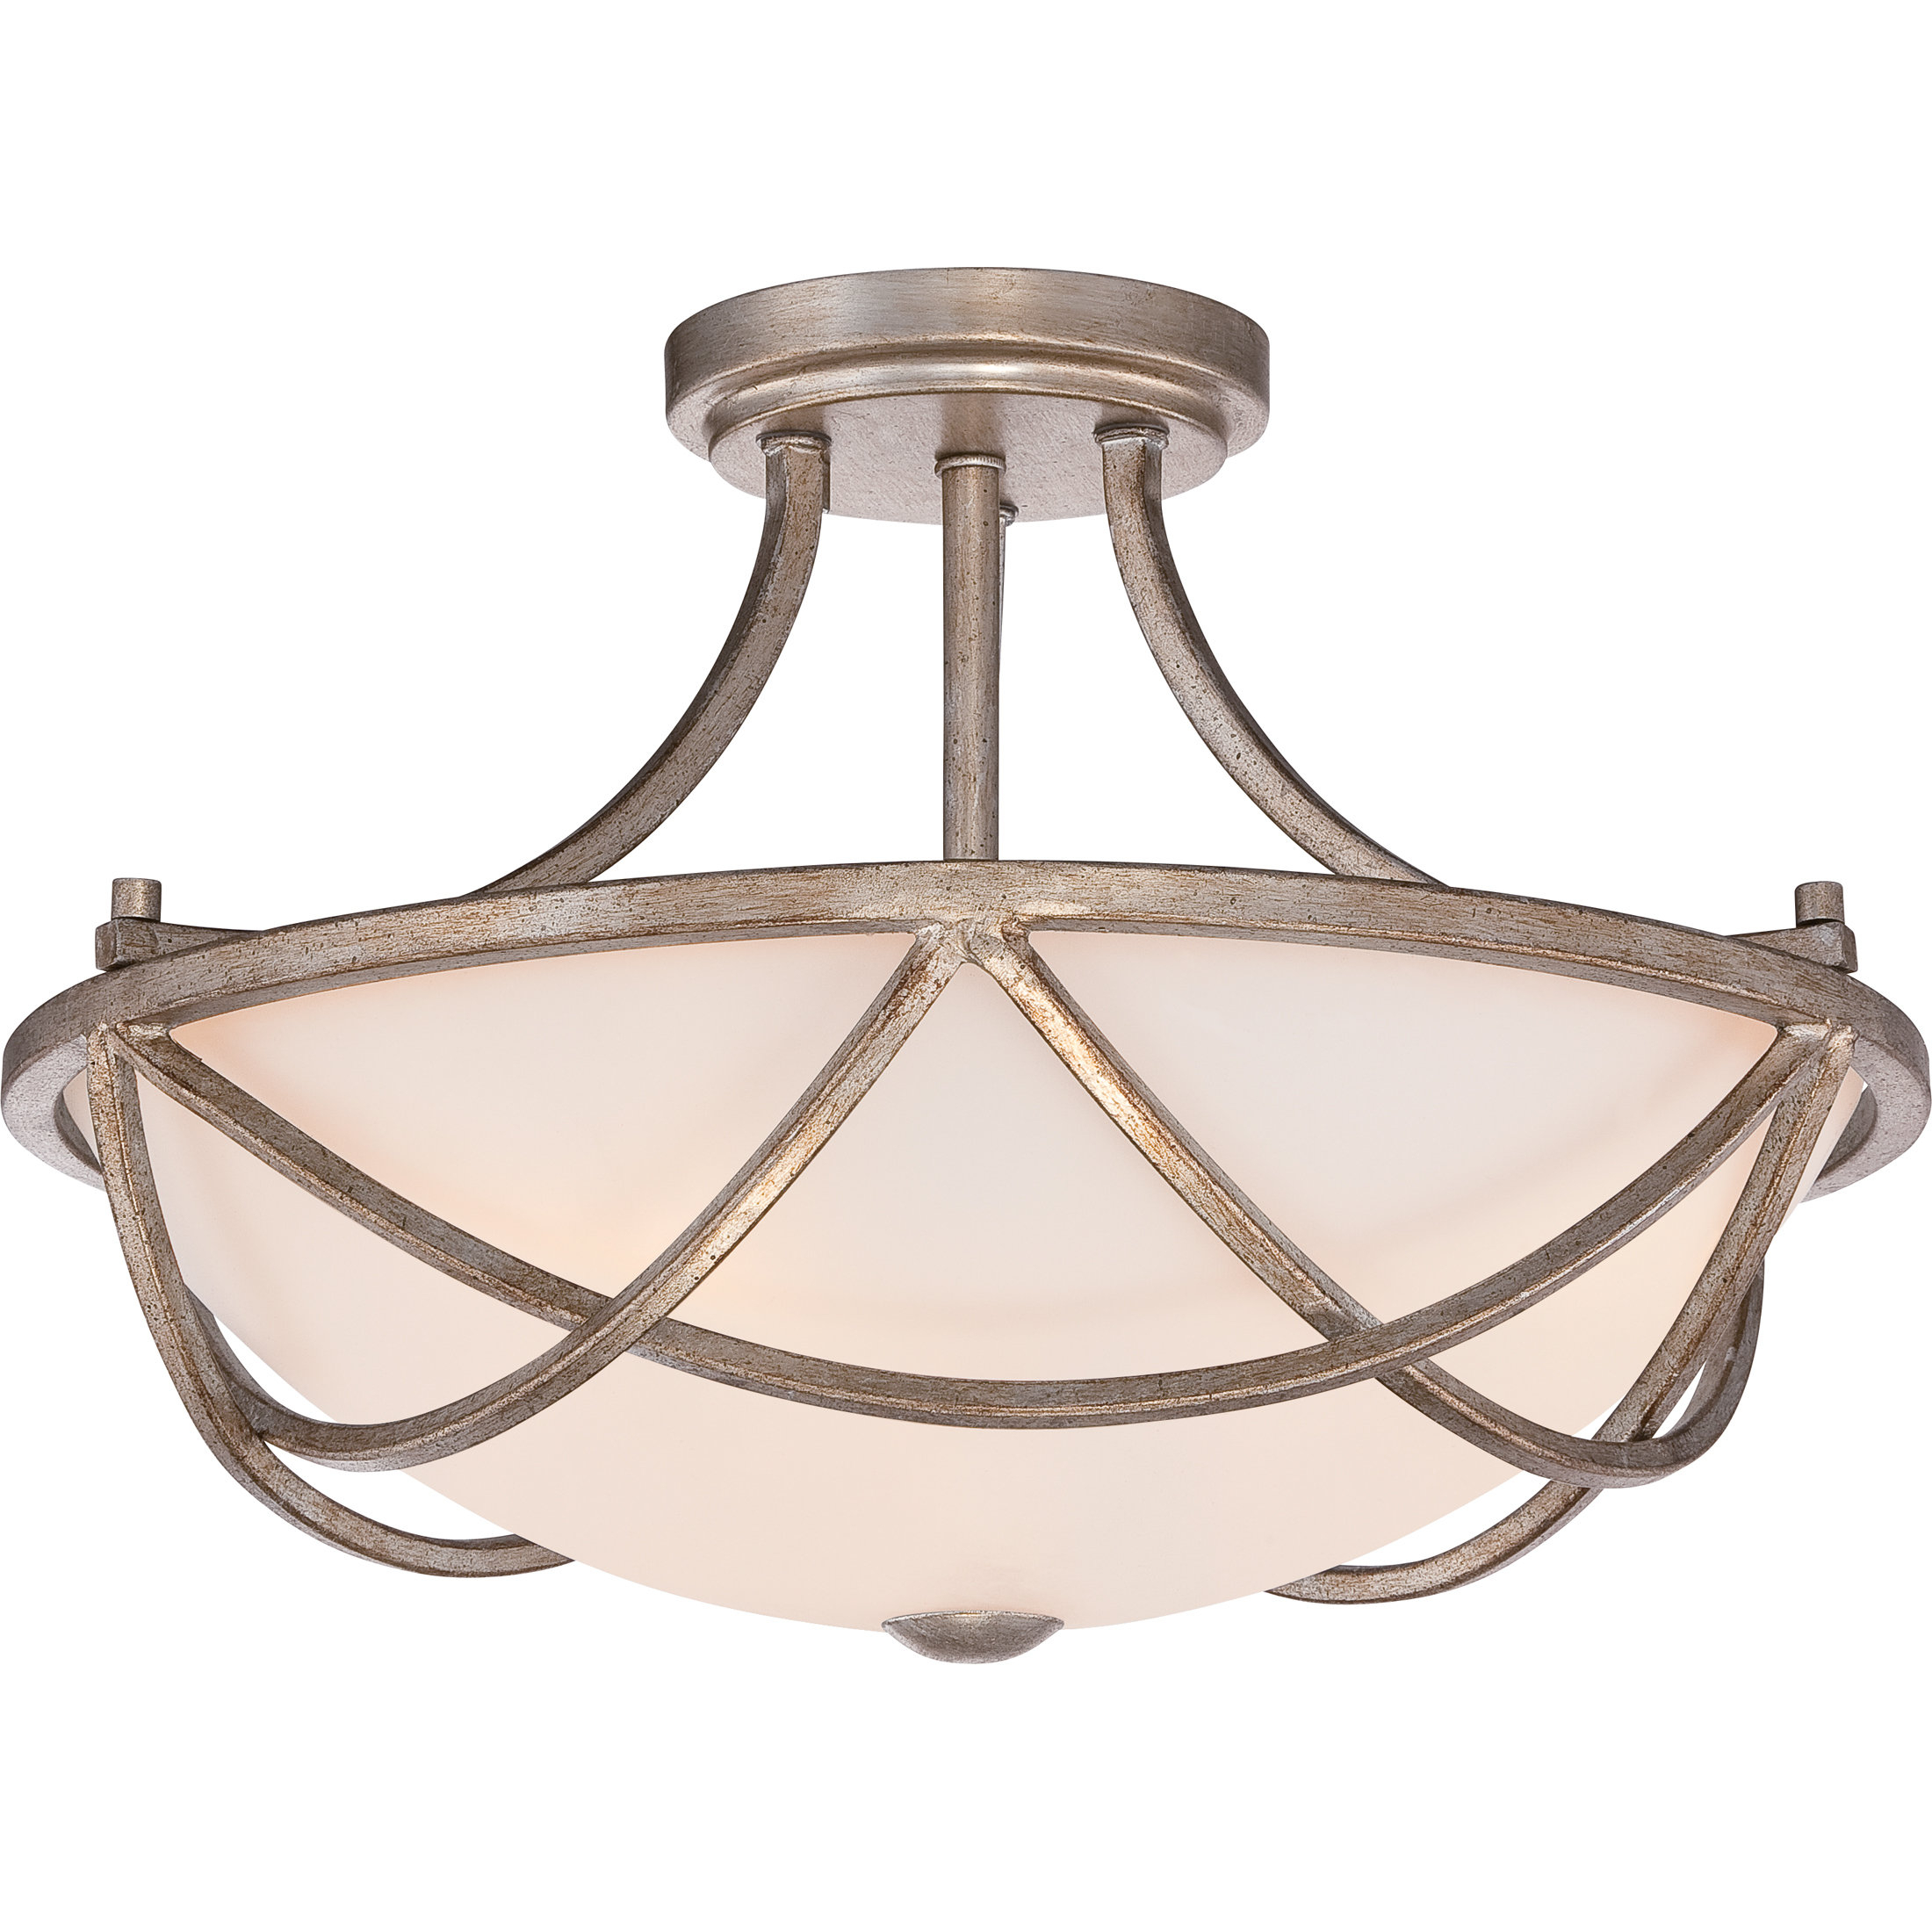 Widely Used Newent 3 Light Single Bowl Pendants Inside Hedda 2 Light Single Bowl Pendant (View 12 of 20)